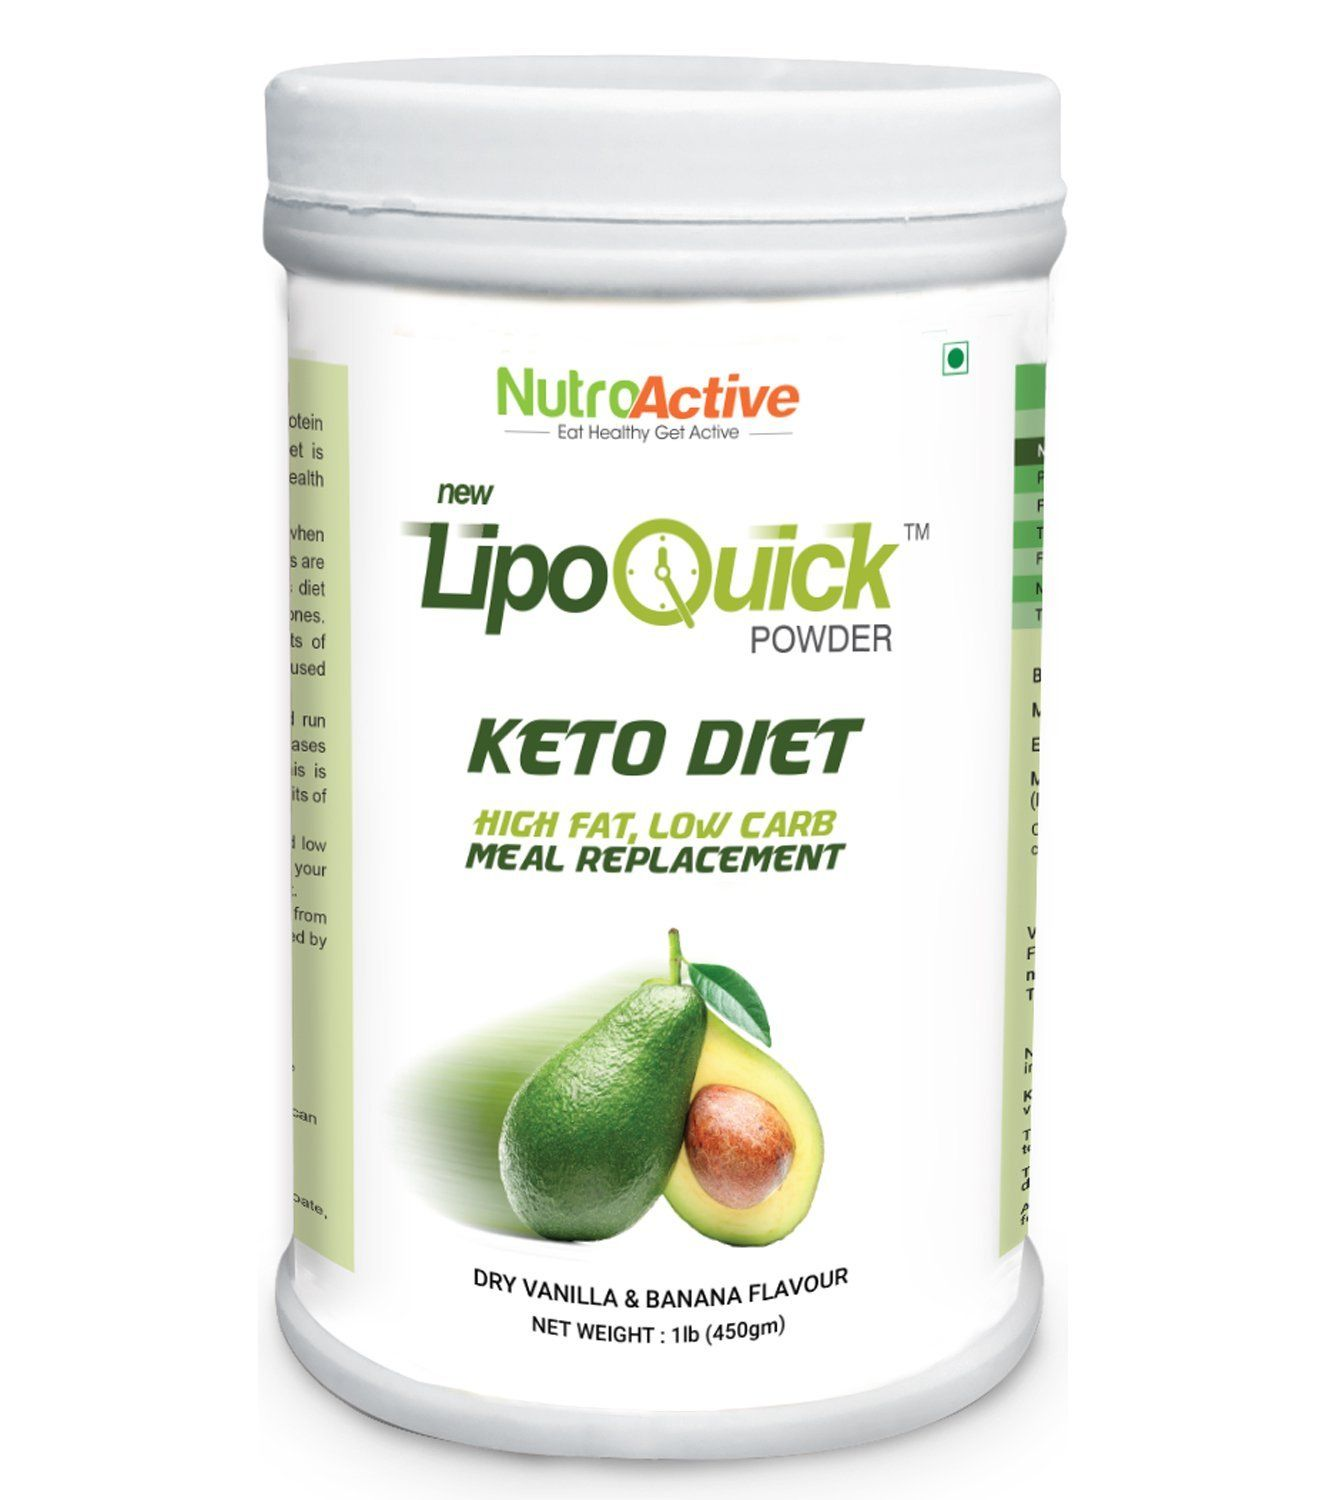 NutroActive LipoQuick Powder Keto Diet Meal Replacement